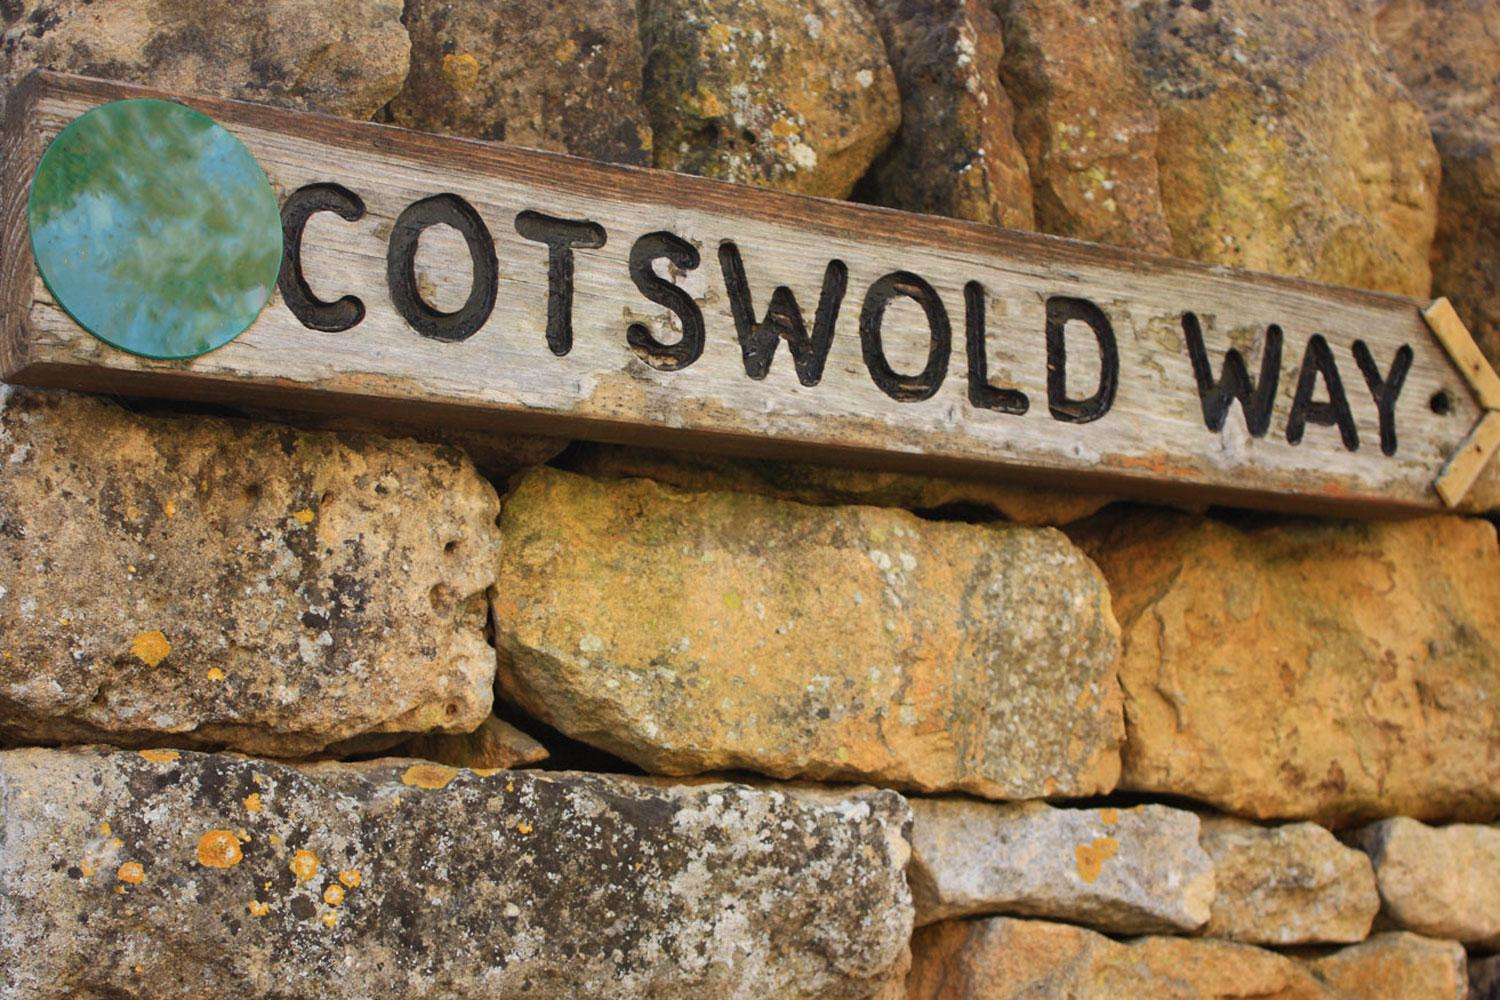 Cotswold Way way marking